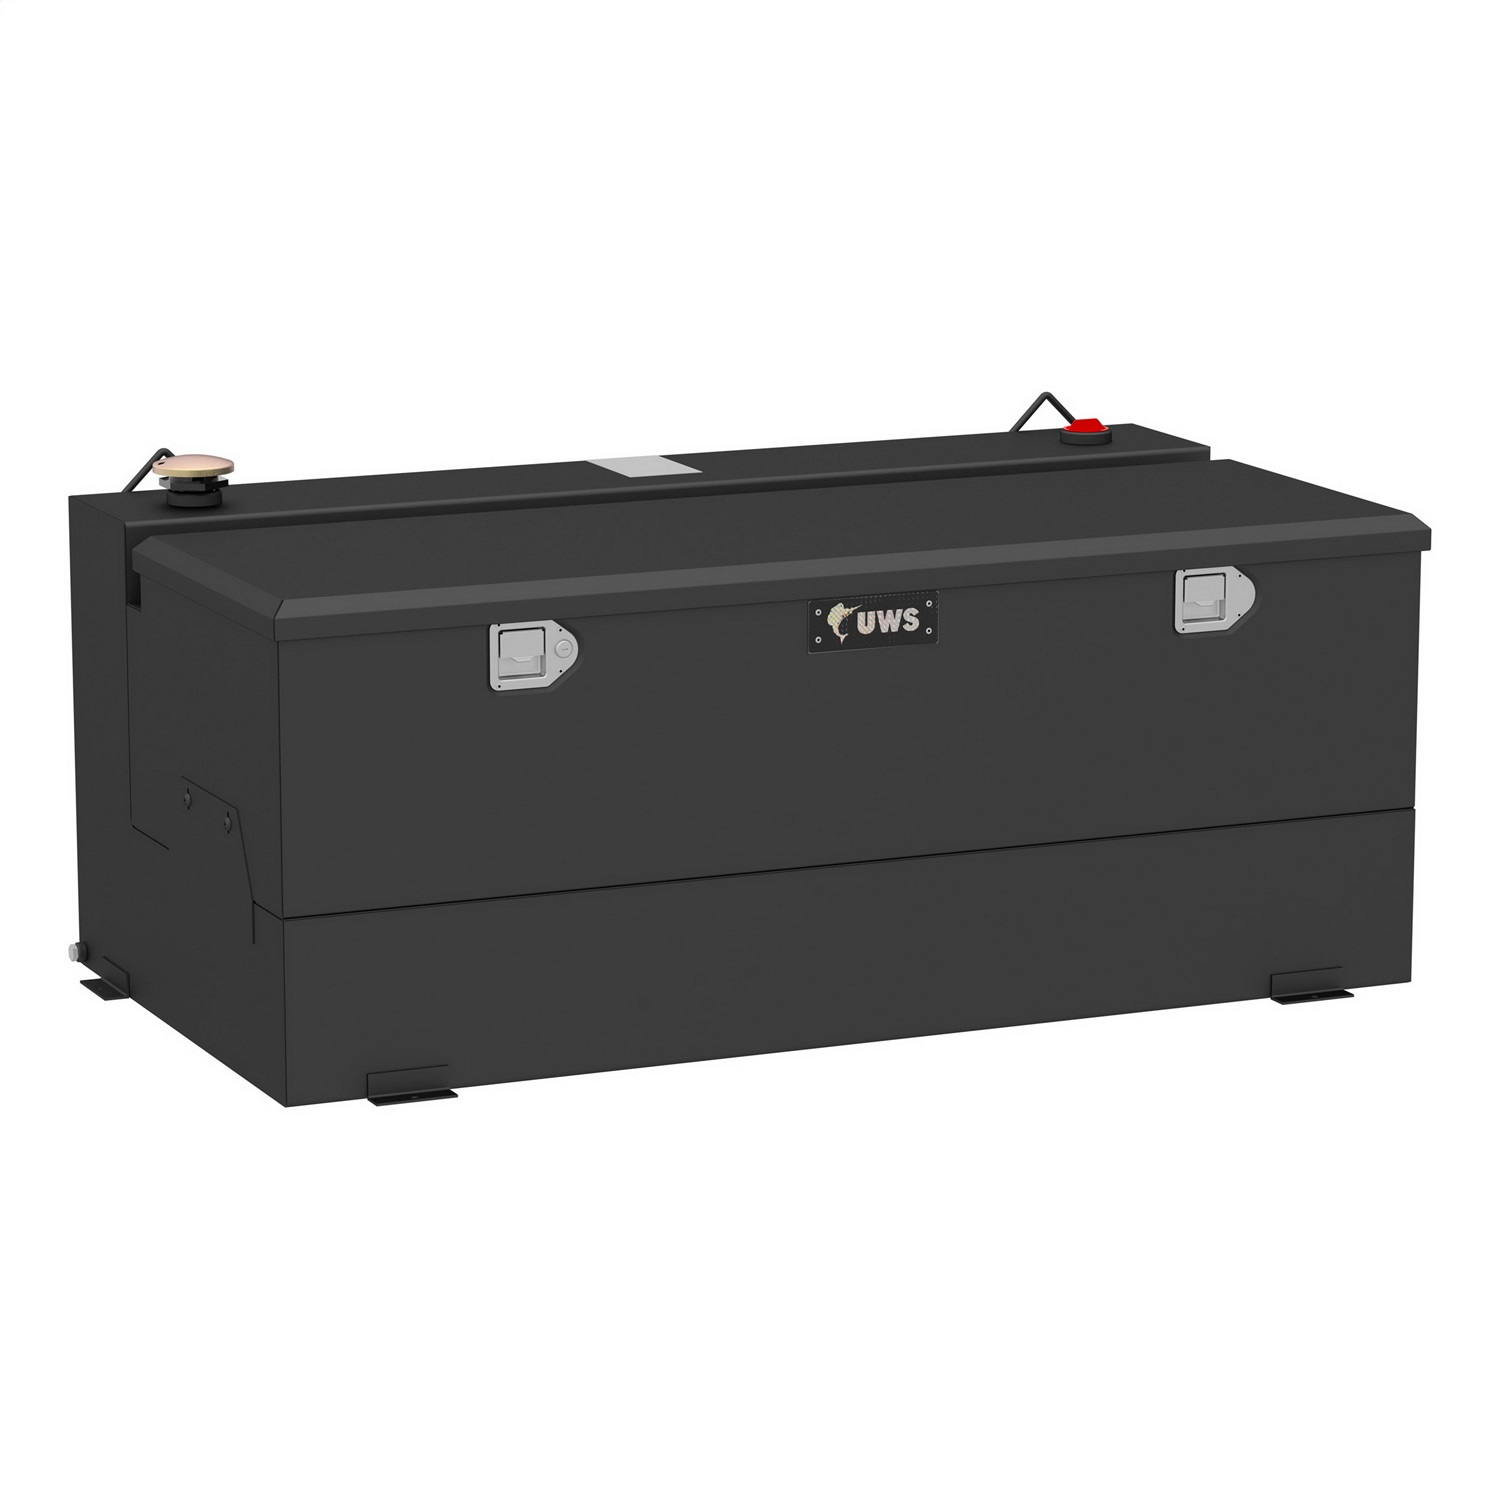 Combination Liquid Transfer Tank/Tool Box, 100 Gallon, Non Flammable Liquid, Matte Black, Steel